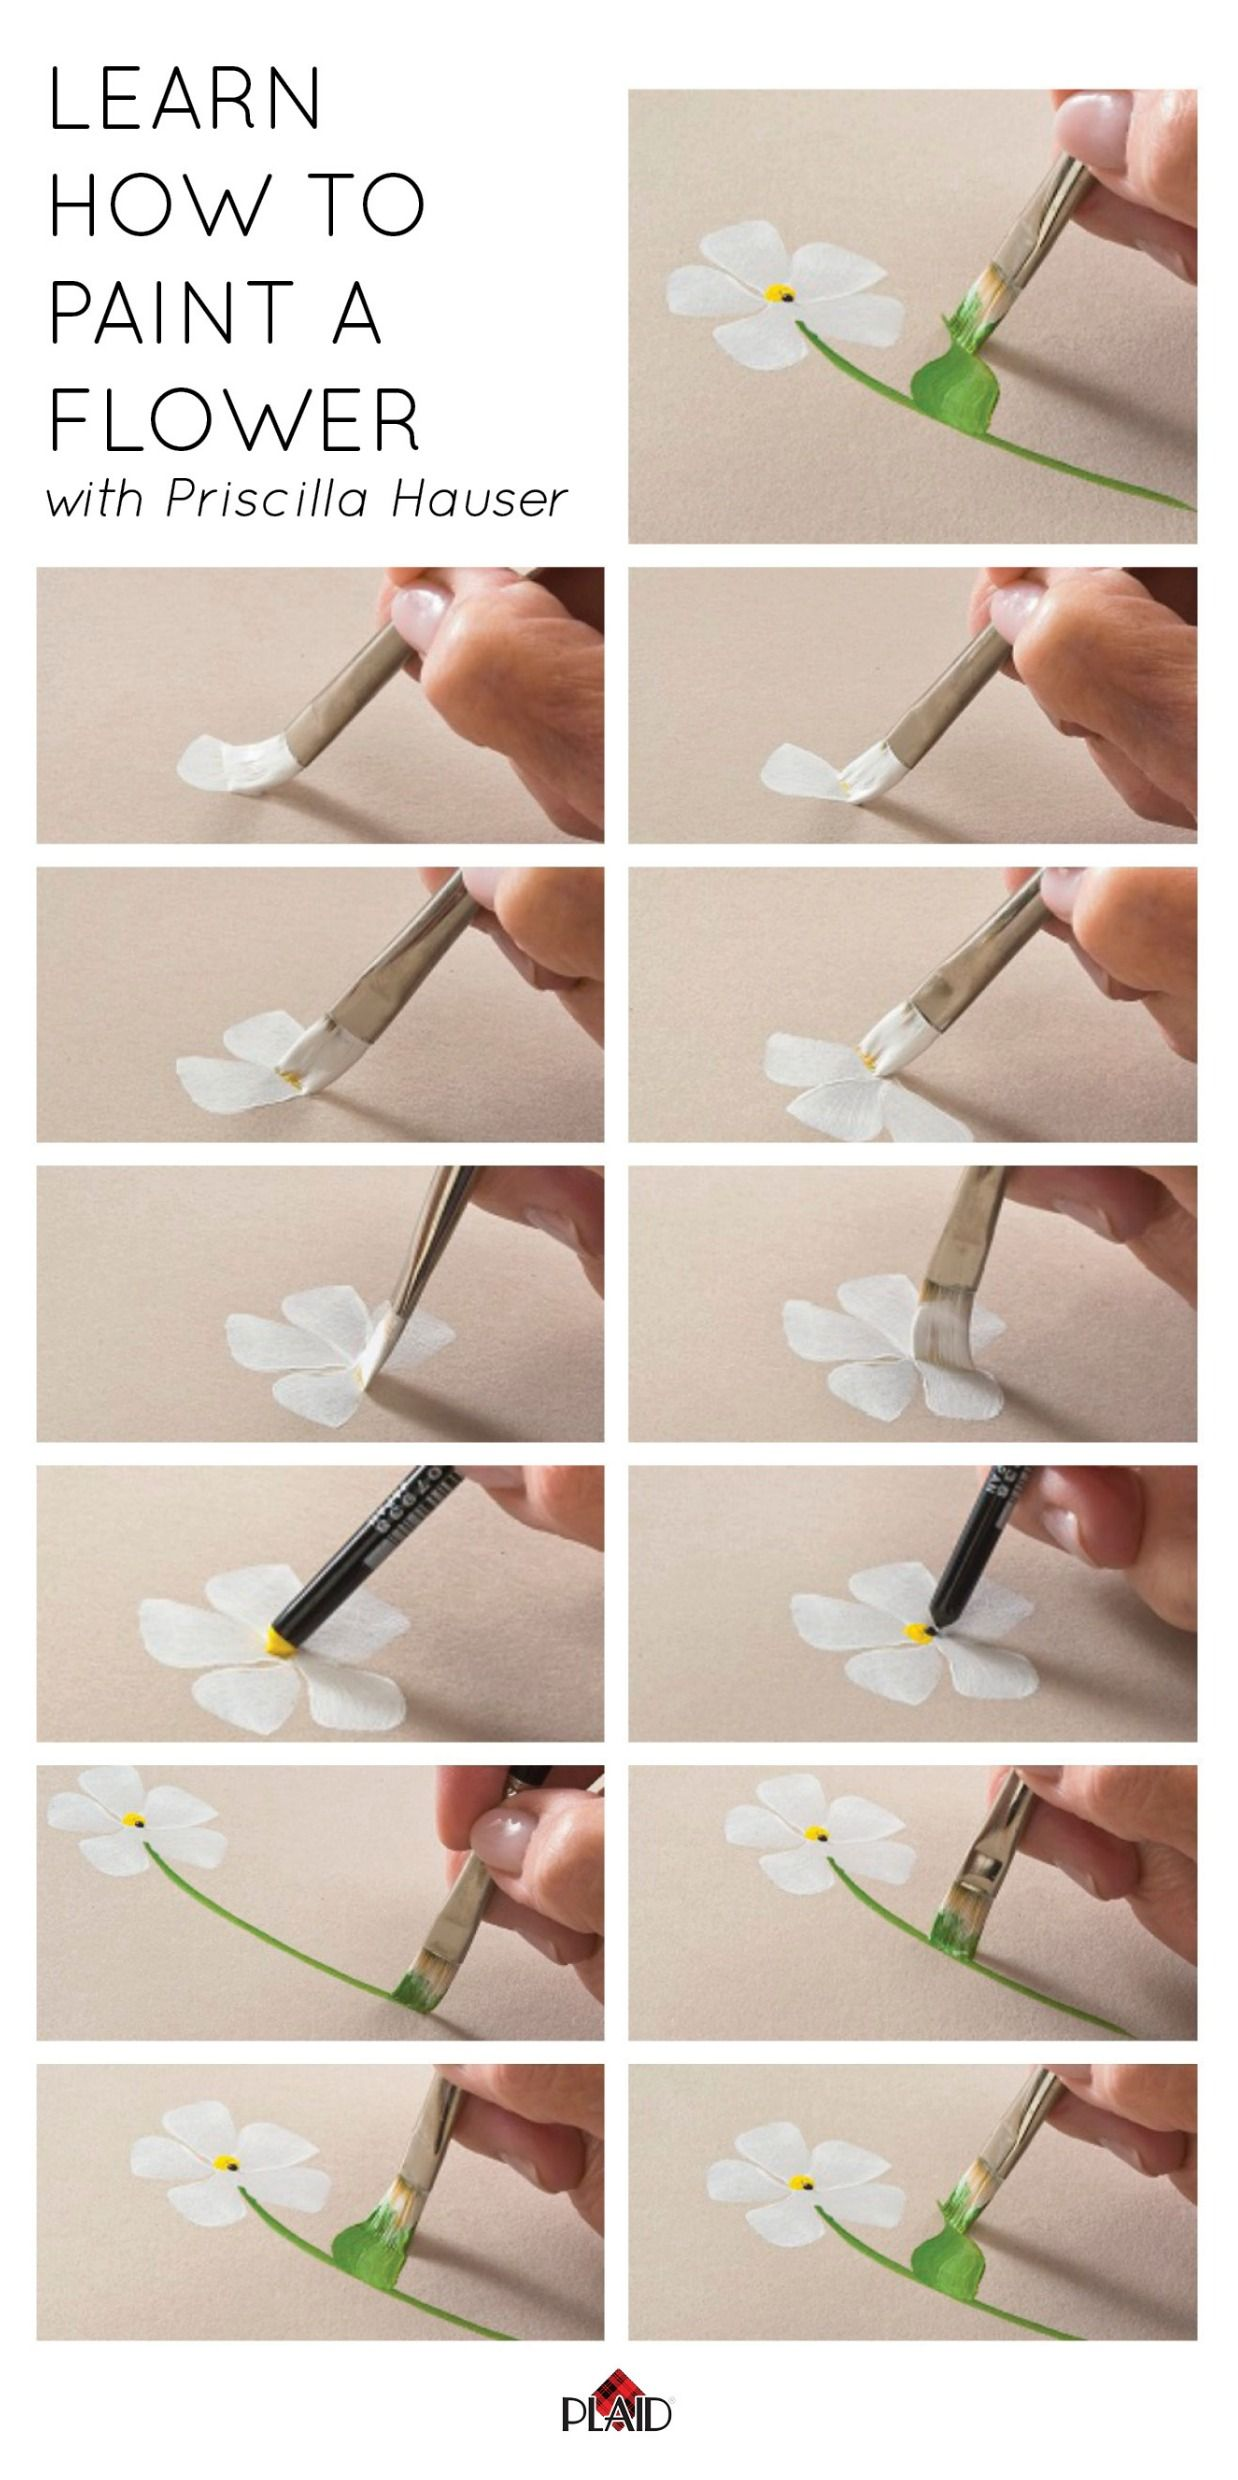 Learn How To Paint A Five Petal Flower With Priscilla Hauser Super Easy Step By Steps Plaidcrafts DIY